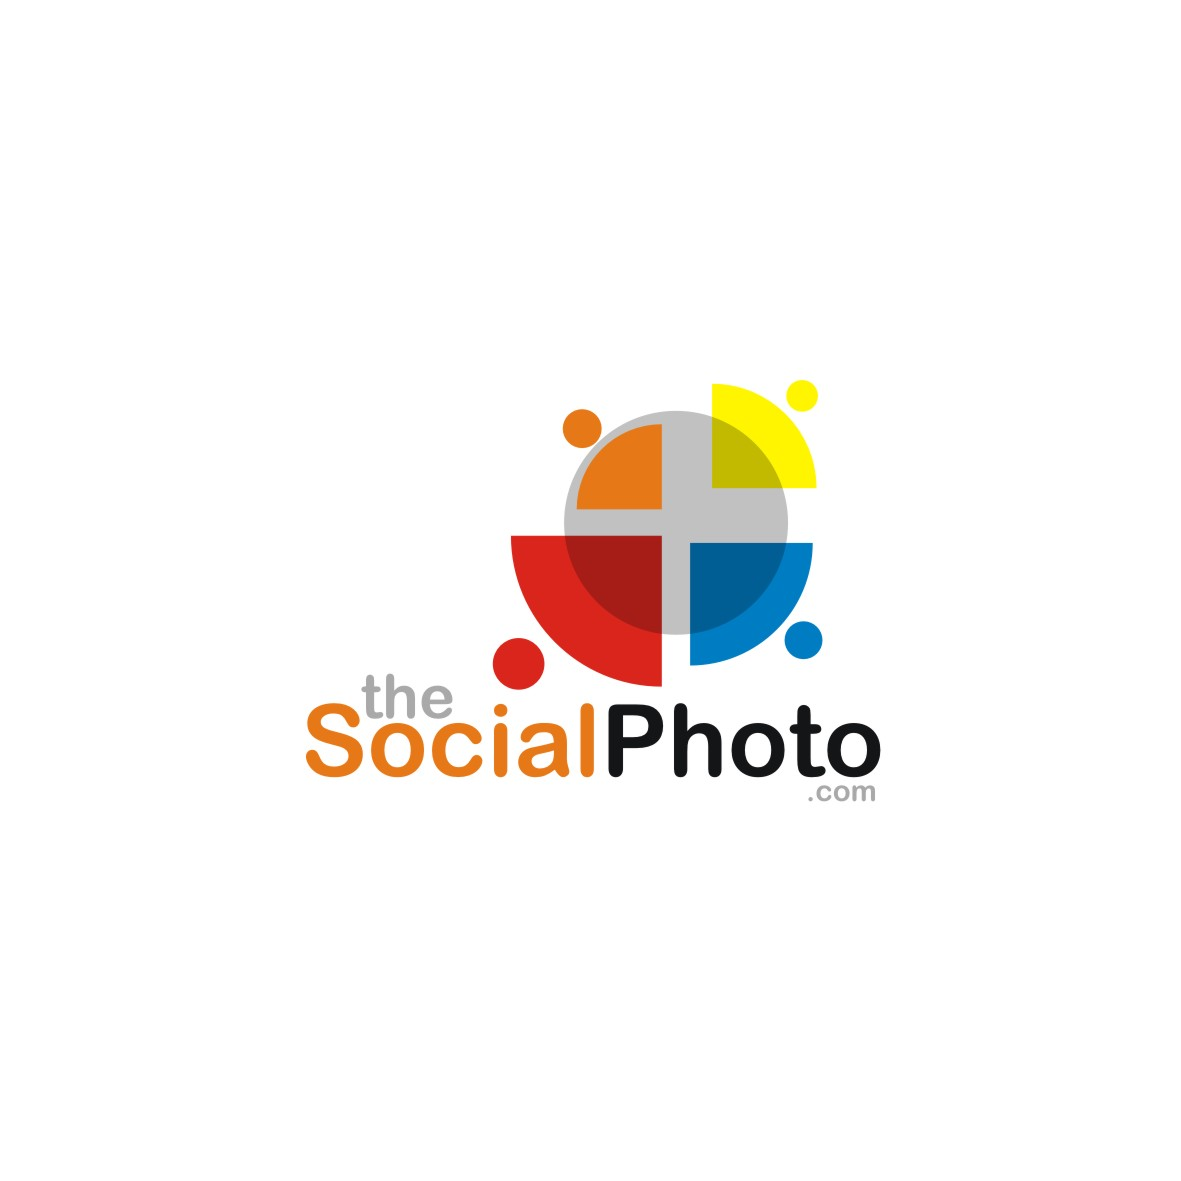 Logo Design by arteo_design - Entry No. 83 in the Logo Design Contest New Logo Design for the social photo.